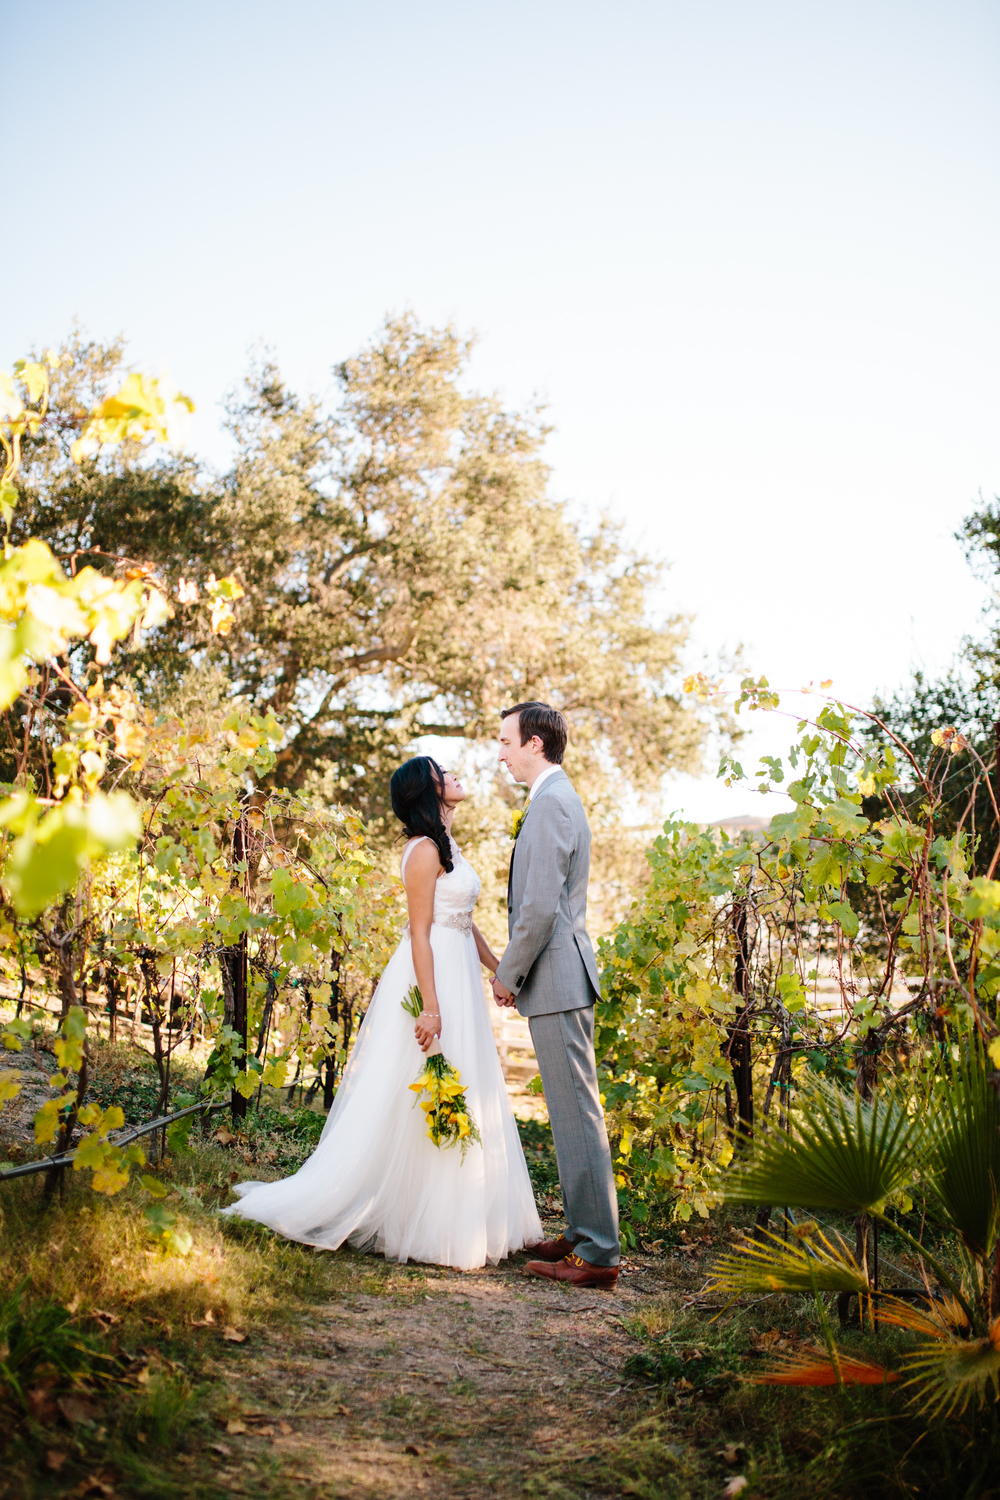 Giracci Vinyards and Farms Wedding Krizia and Ben-53.jpg